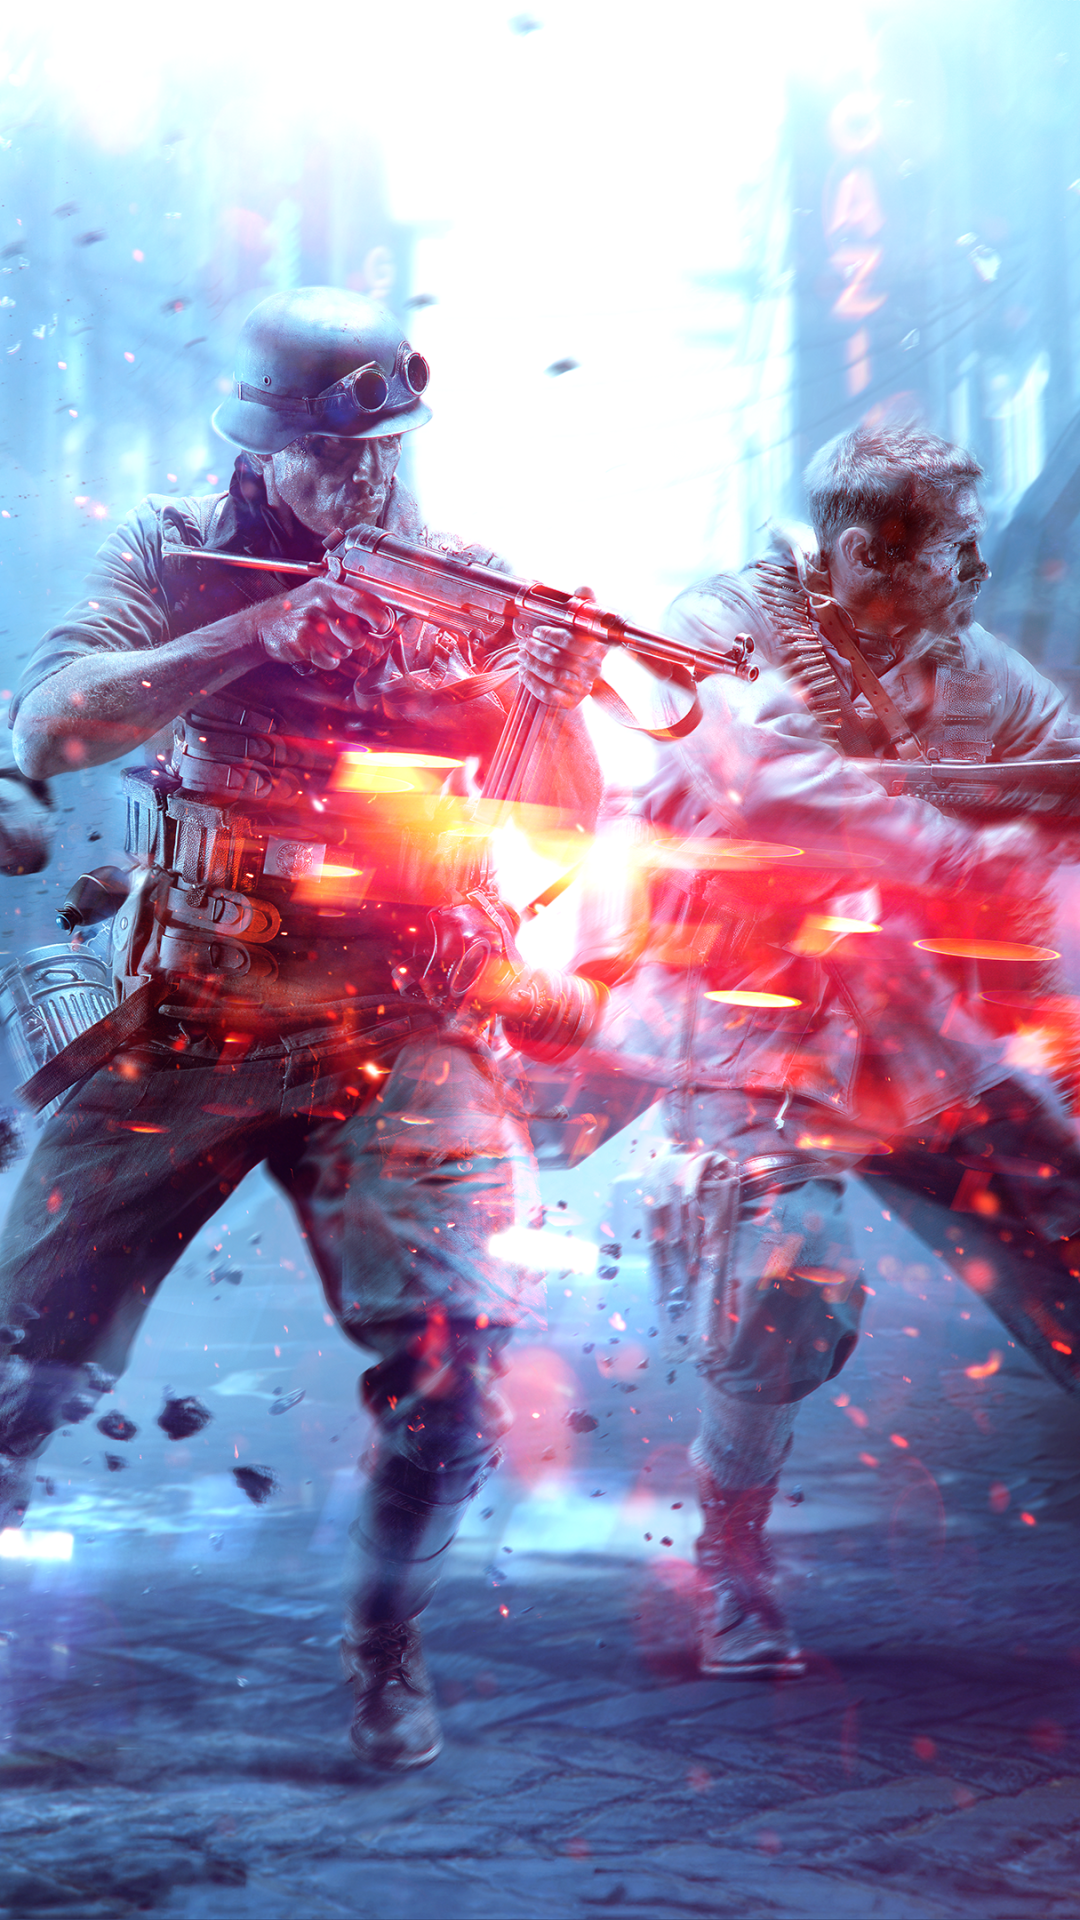 Cool Ps4 Games Image Battlefield Games Battlefield Gaming Wallpapers